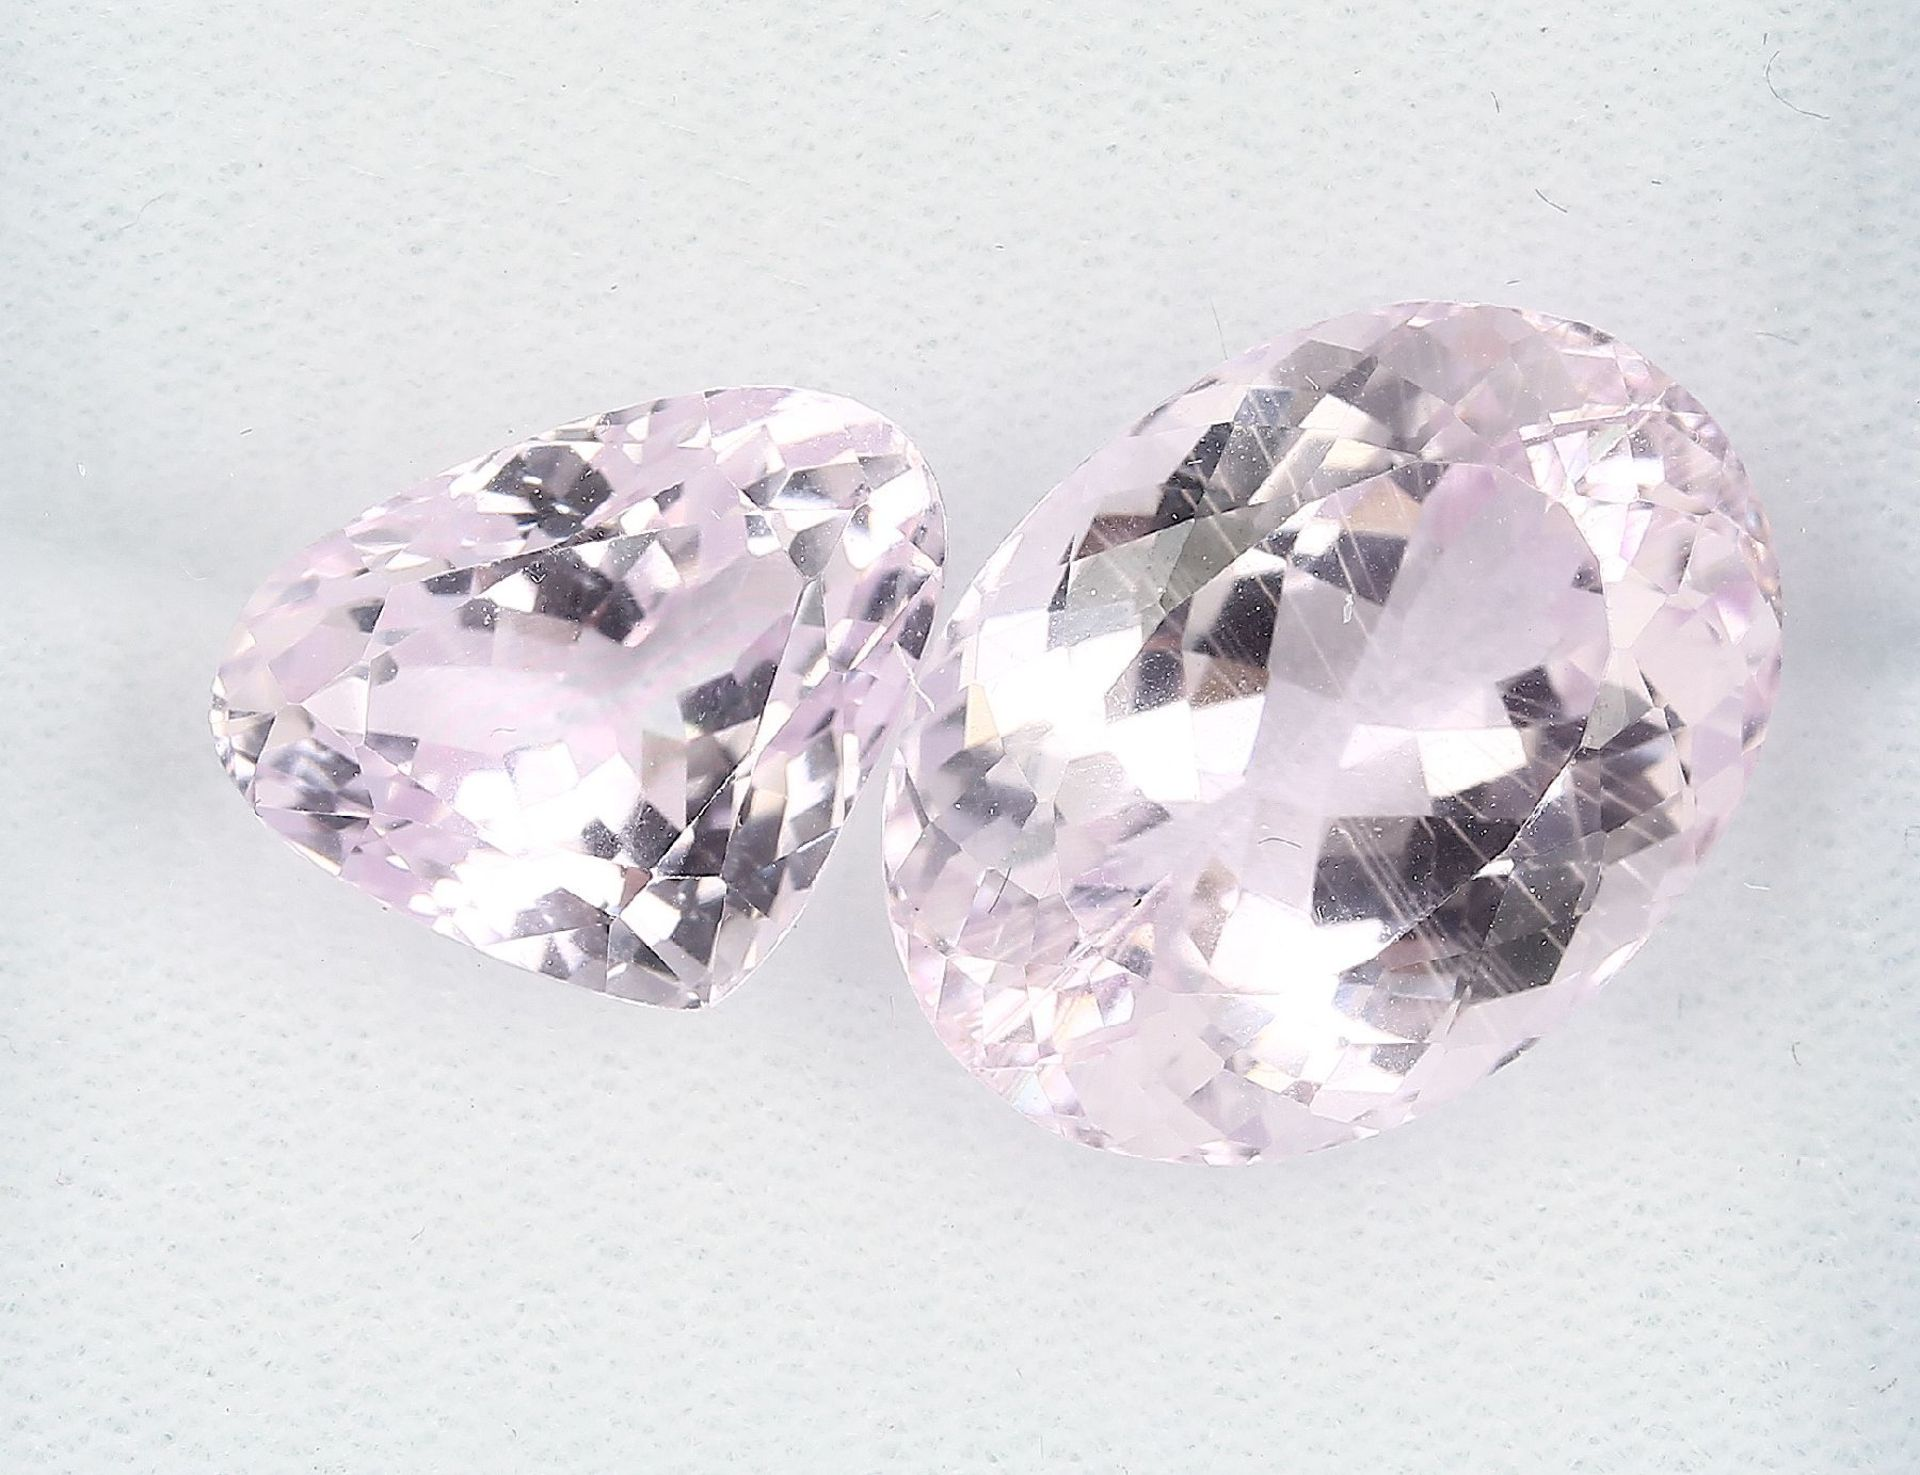 Los 70011 - Lot 2 lose Kunzite, zus. ca. 34.4 ct, best.aus: 1 x oval facett. und 1 x tropfenf. facett.